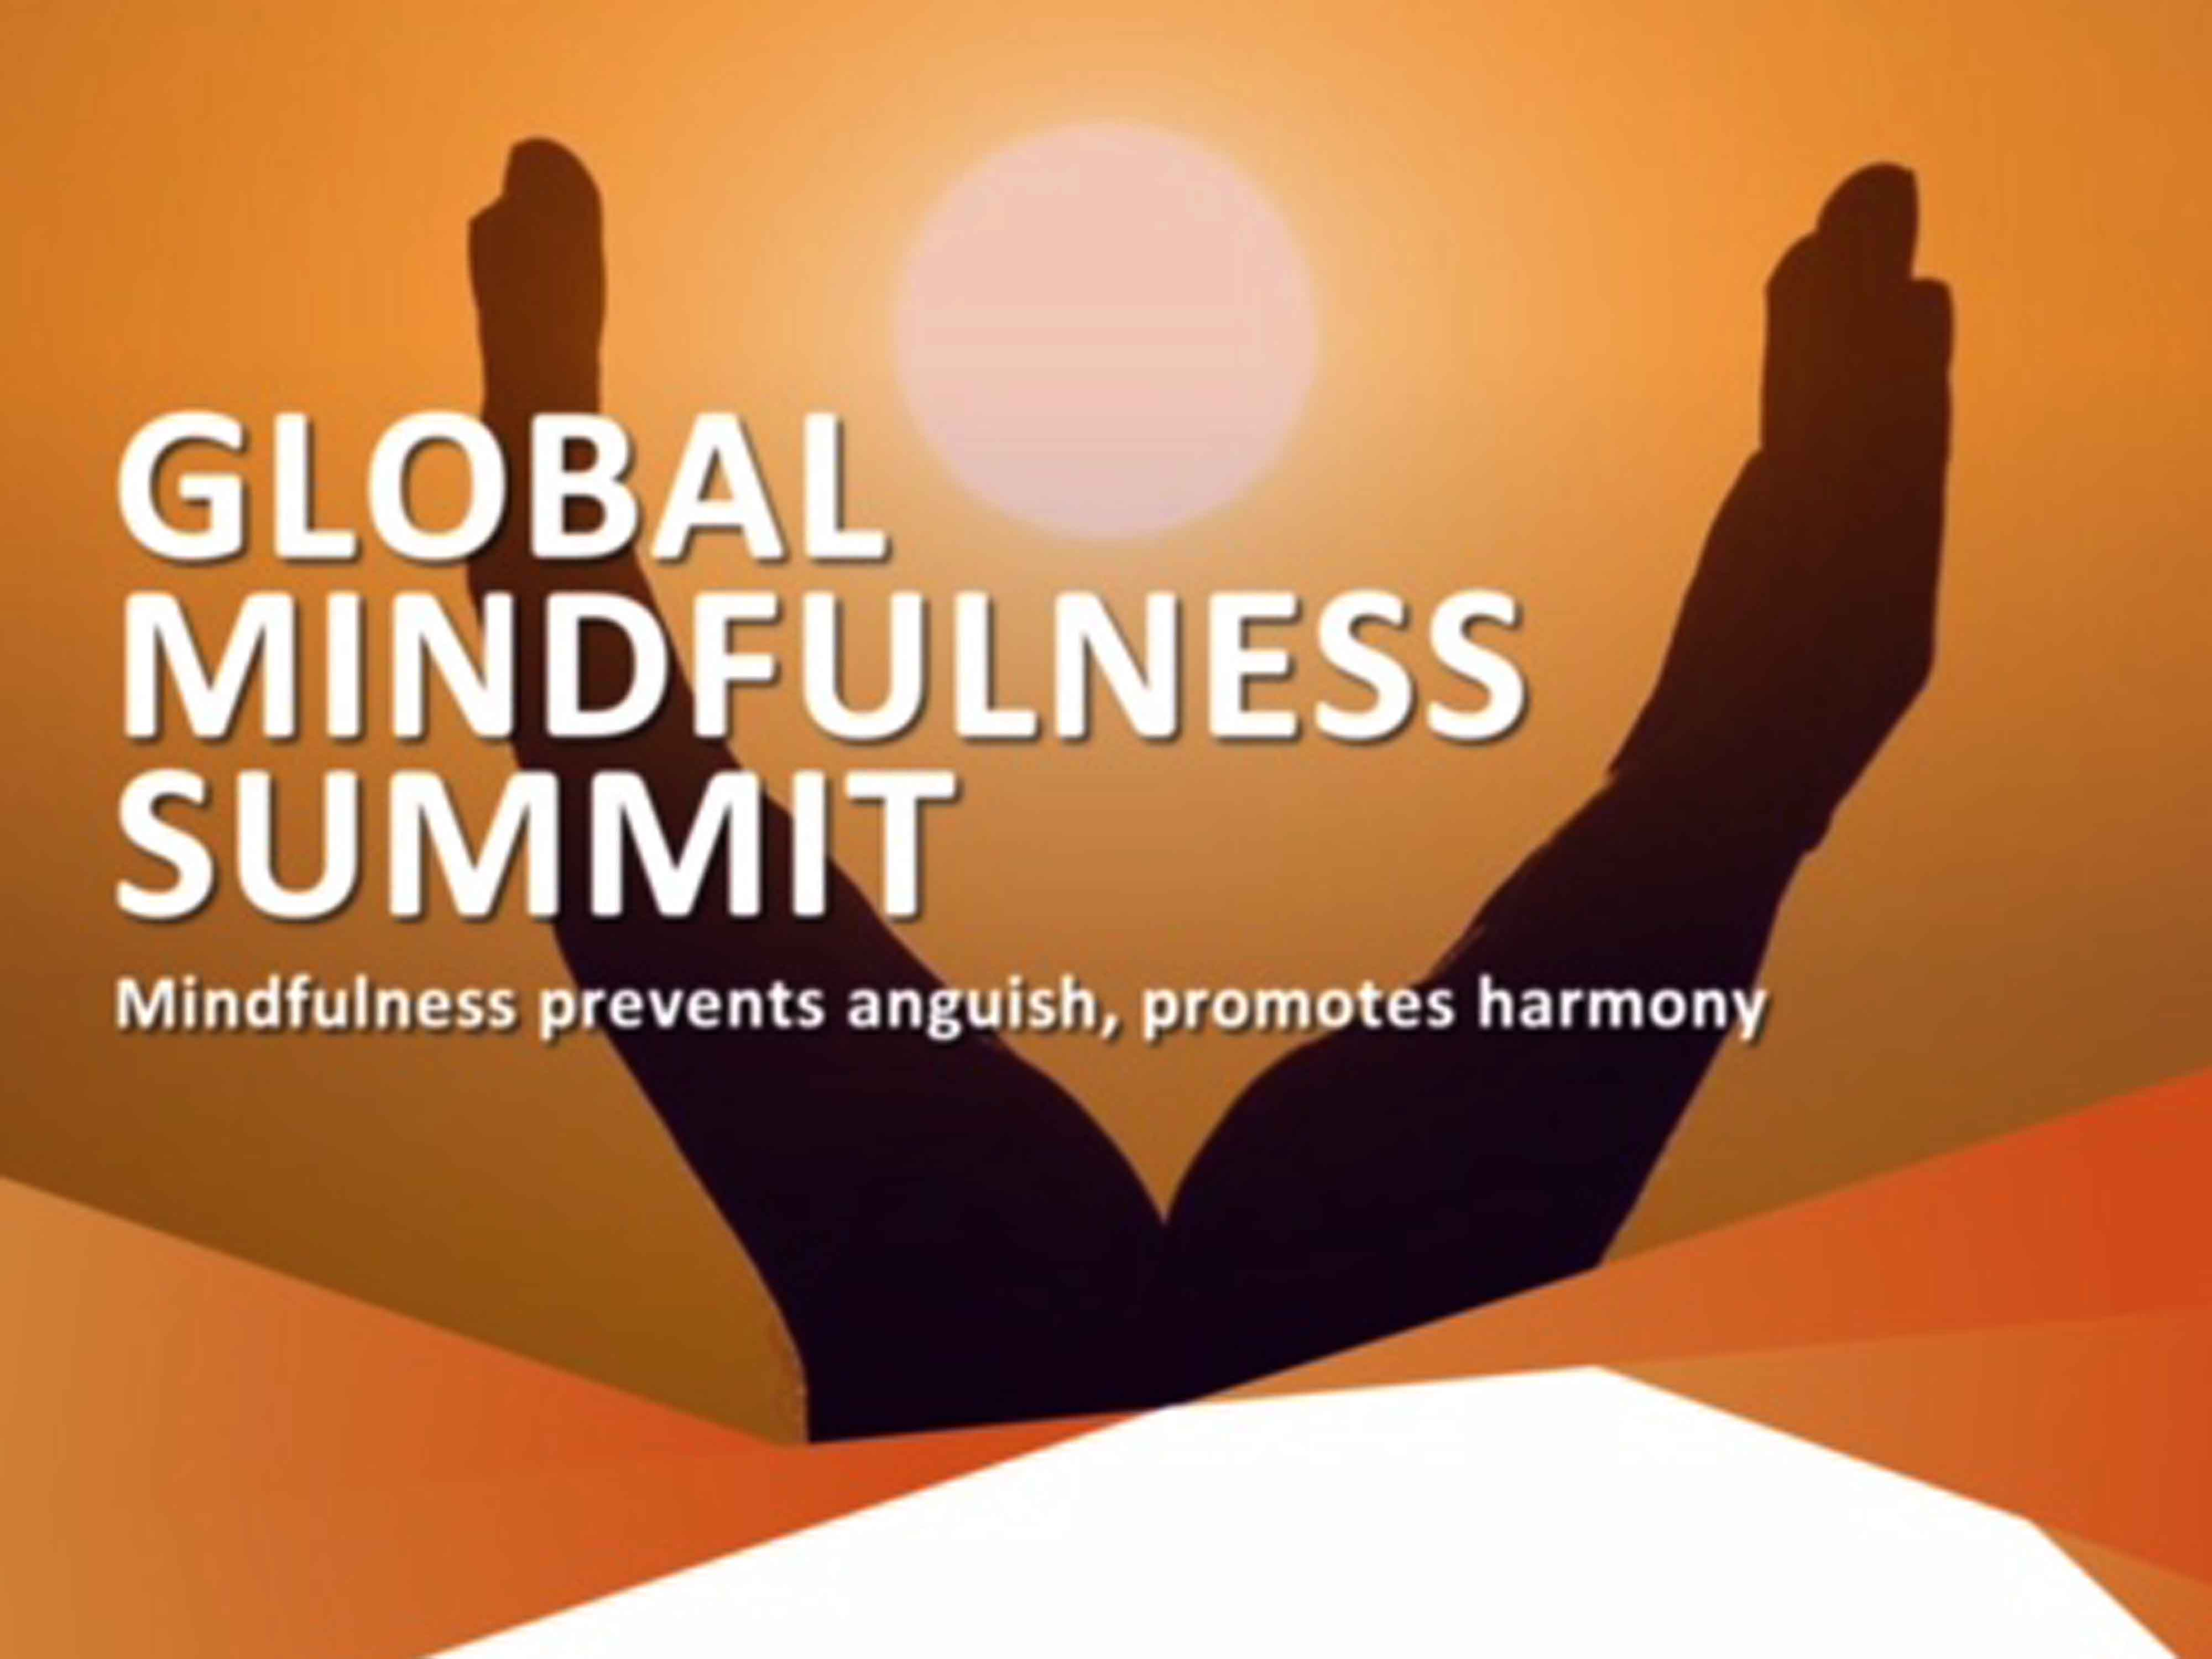 The first Global Mindfulness Summit will be held in Colombo in 2018, February 24-25